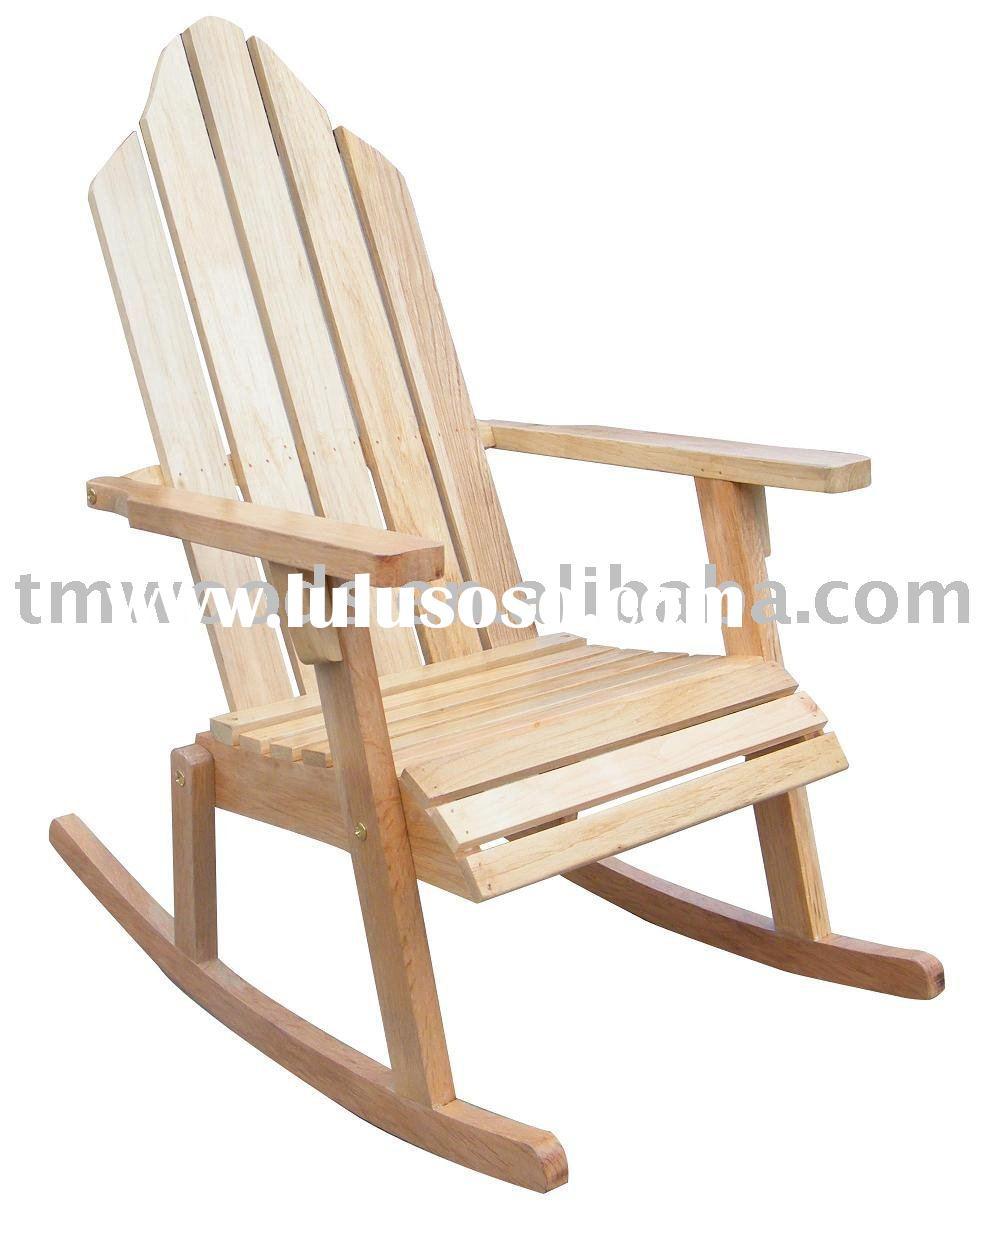 kids rocking chair kids rocking chair Manufacturers in